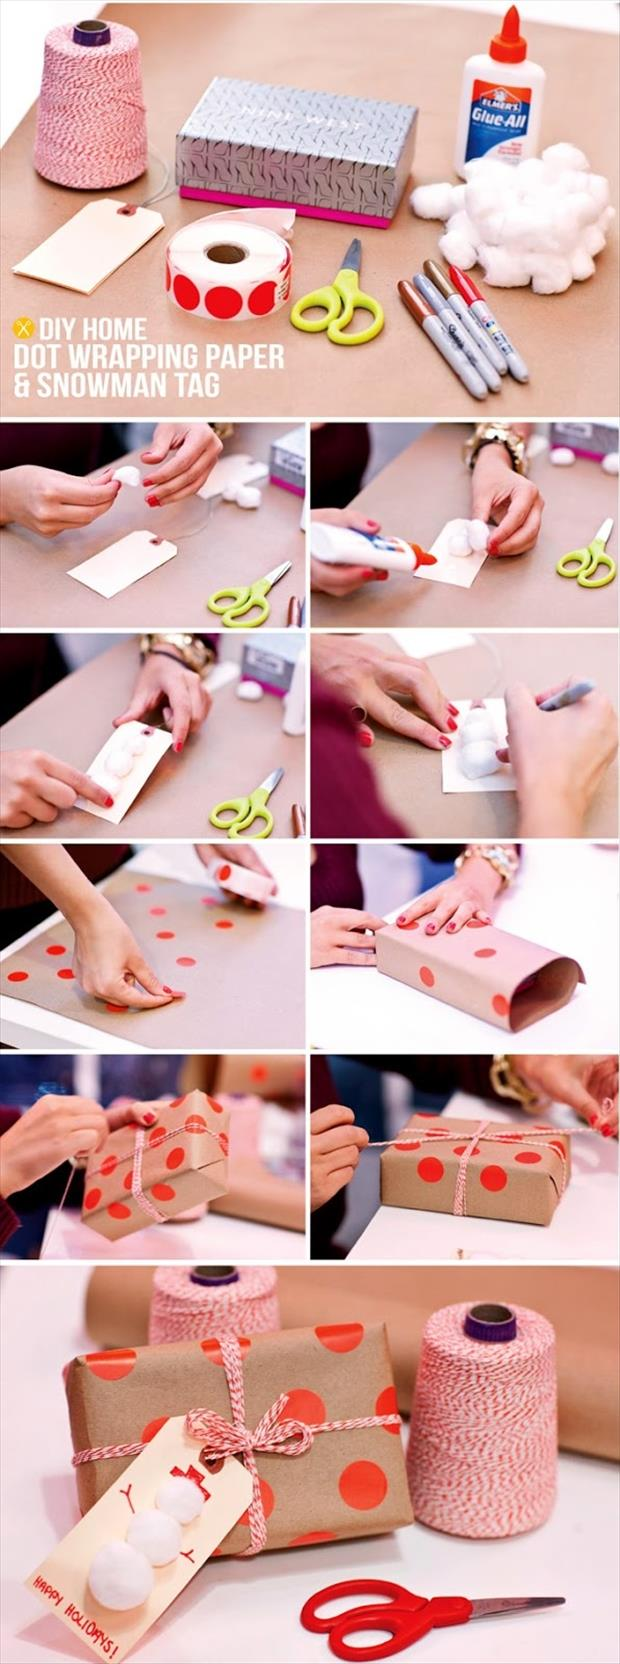 do it yourself crafts (6)